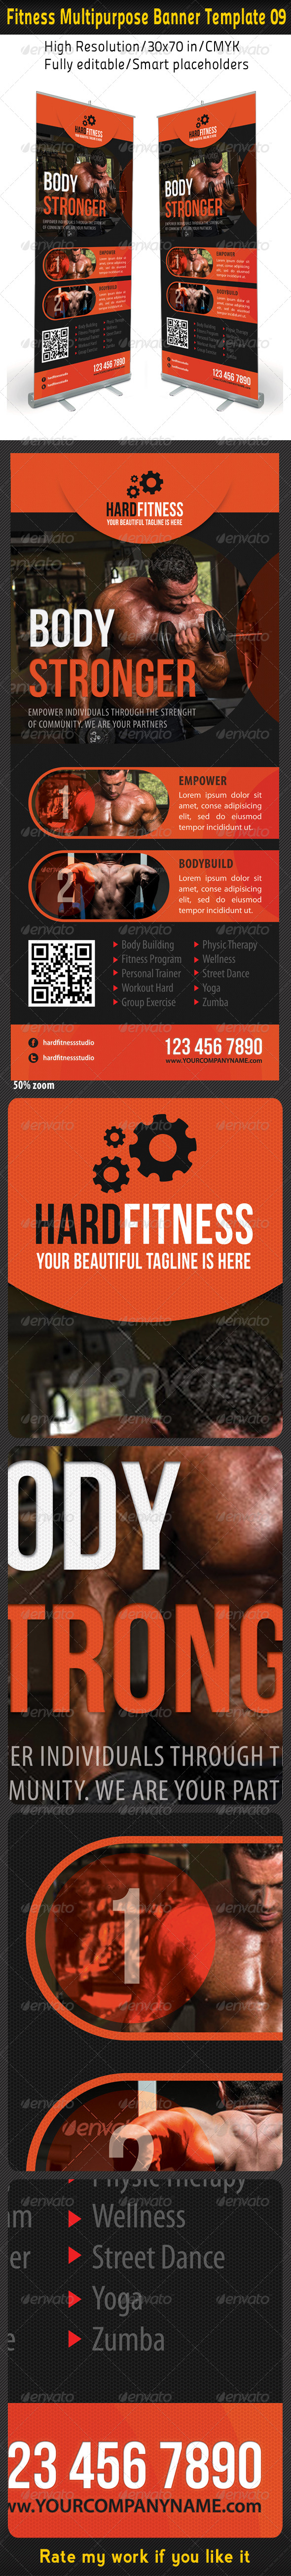 Fitness Multipurpose Banner Template 10 - Signage Print Templates